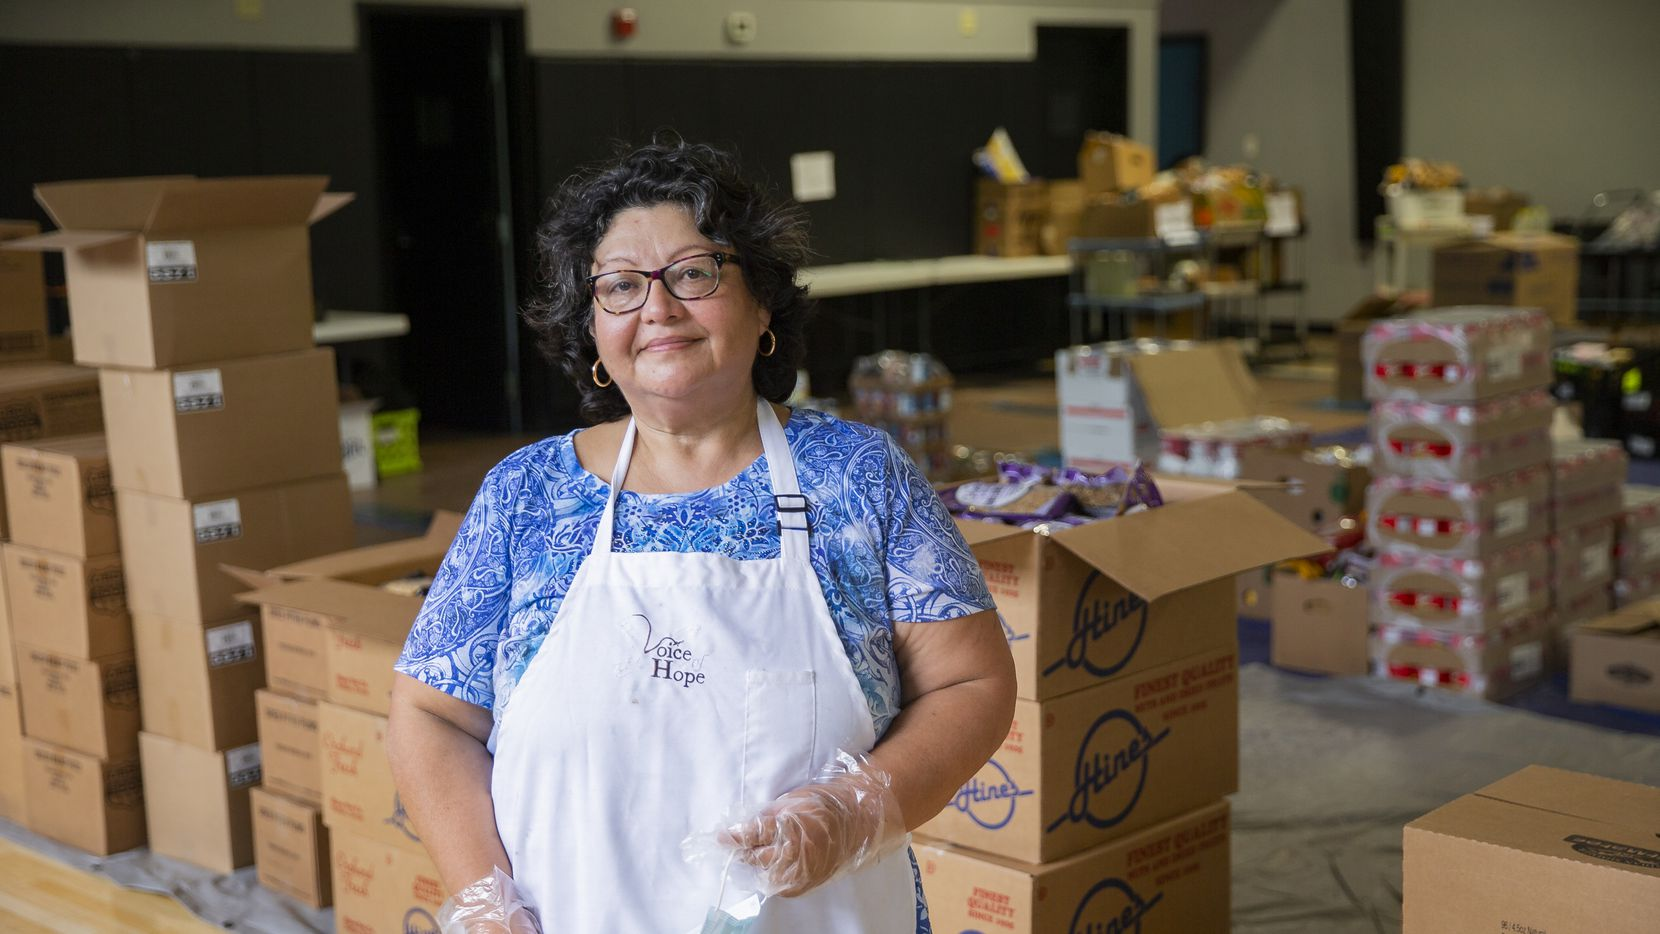 Debbie Solis, a lifelong resident of West Dallas and director of family and community services at Voice of Hope Ministries, stands amid the provisions that the nonprofit is providing to those in need during the coronavirus pandemic.